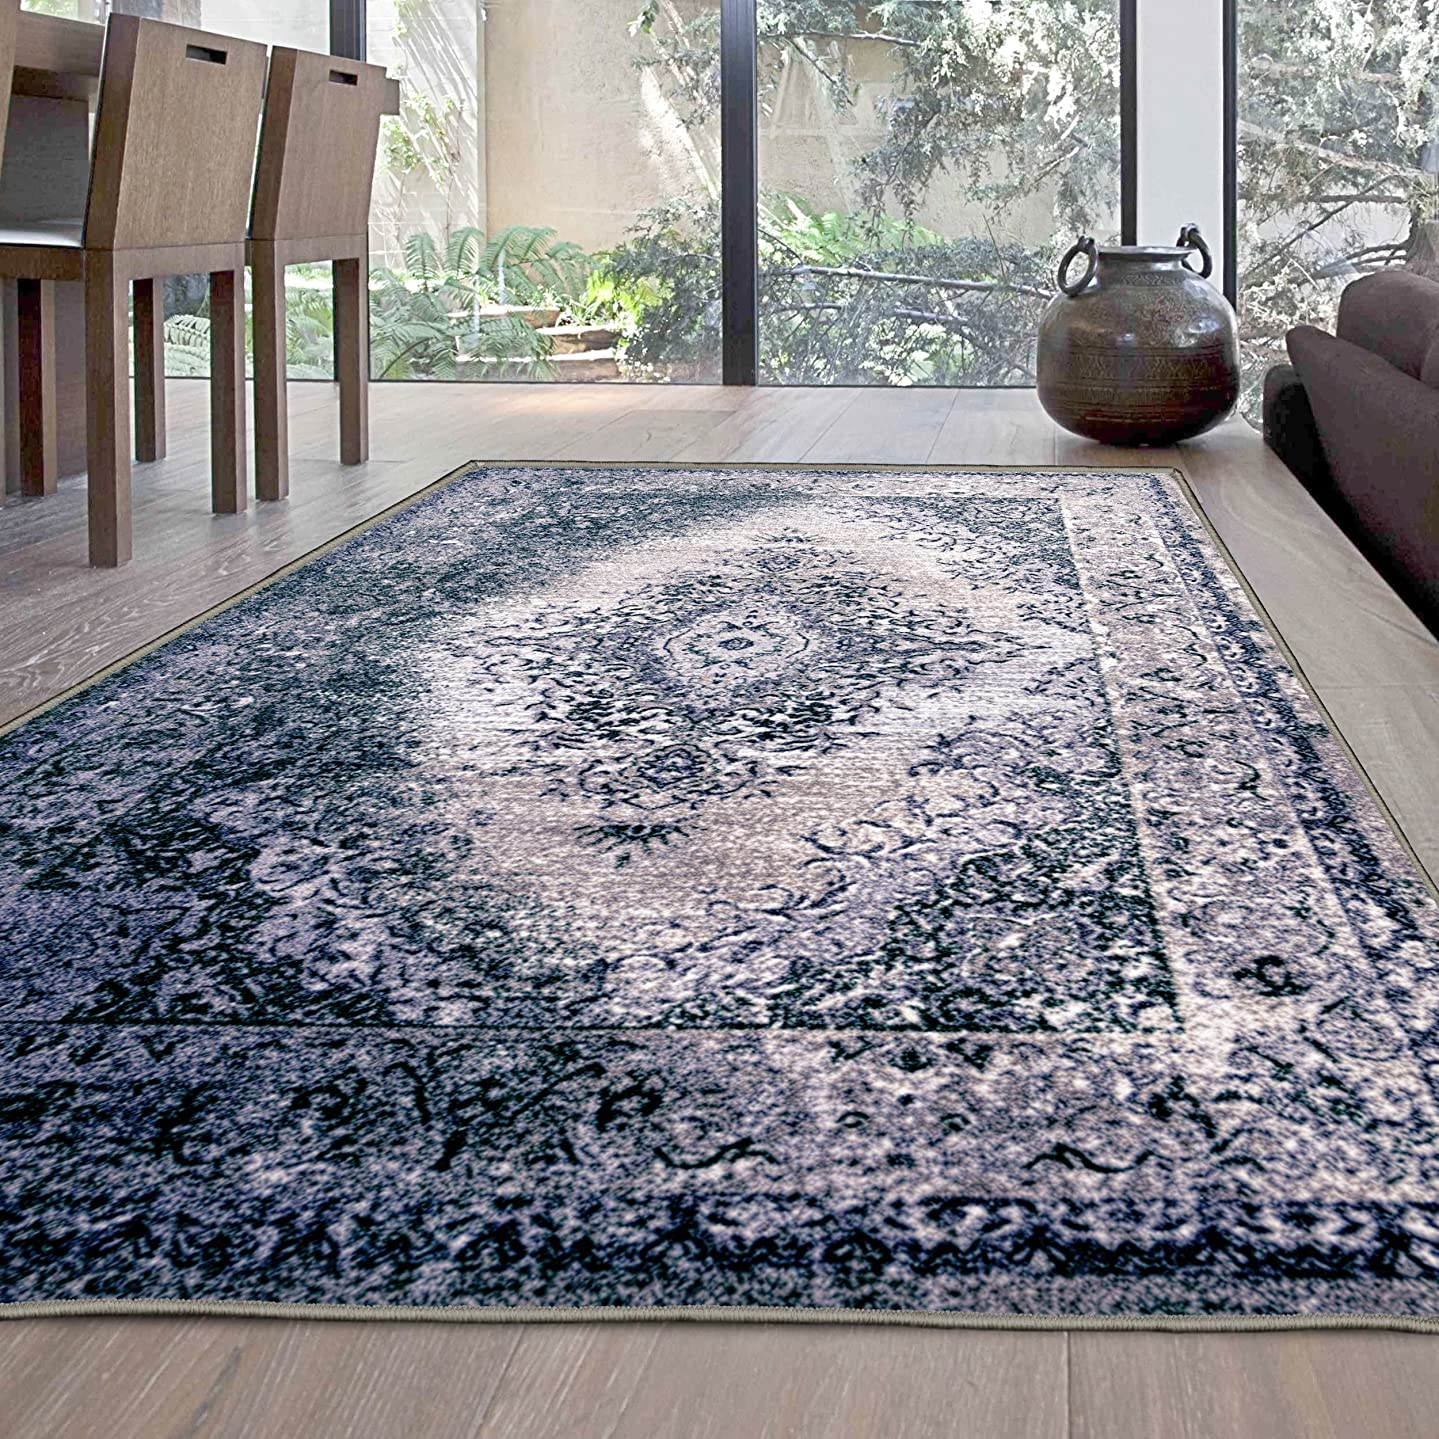 Superior's Designer Non-slip Eldwin Area Rug; Digitally Printed, Low Maintenance, Affordable and Fashionable, Grey - 8' x 10'